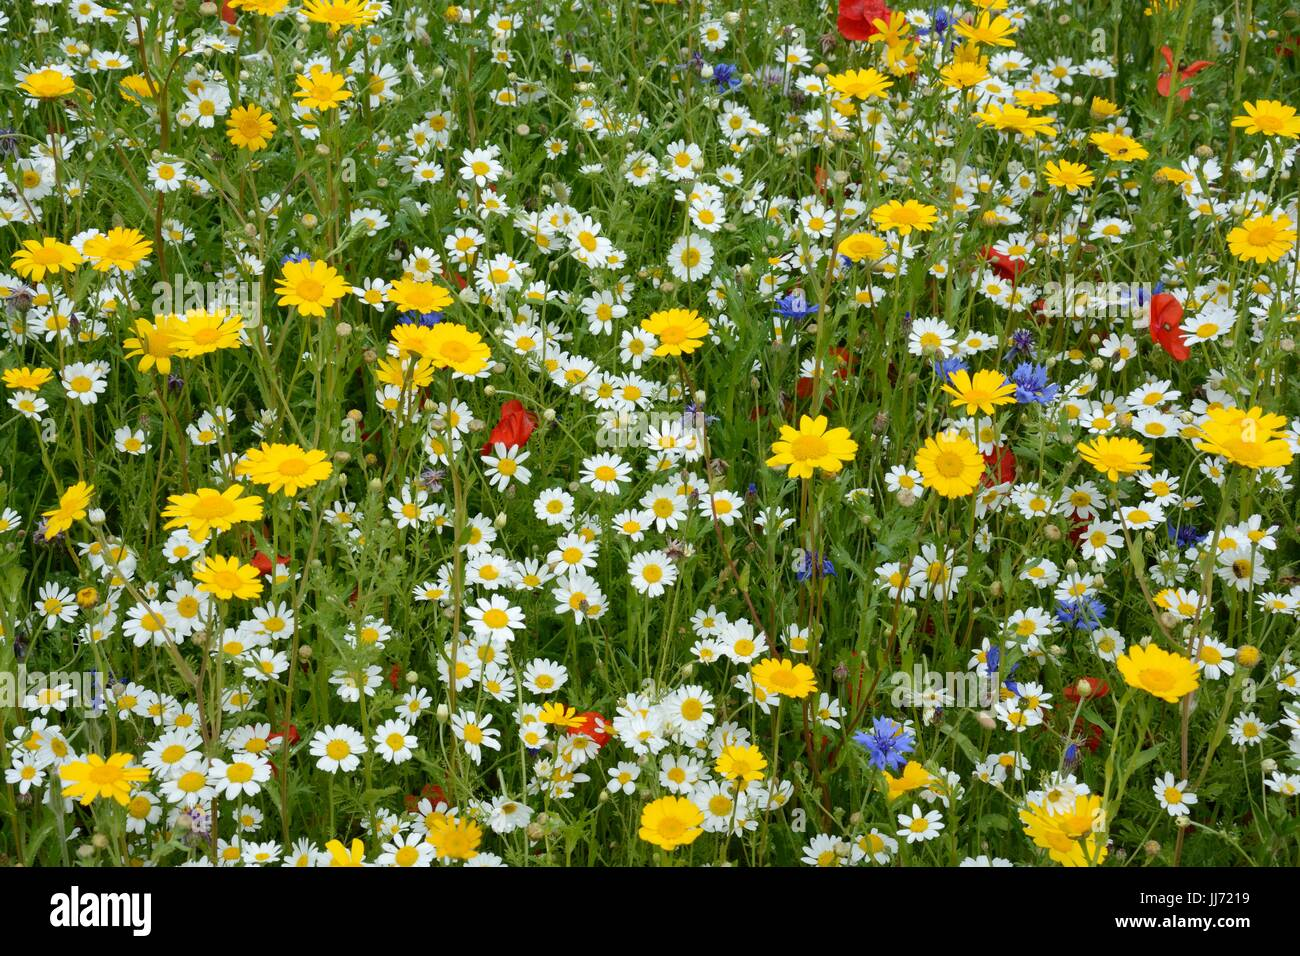 Planted wildflower meadow colourful mixes wild flowers spring summer flowers - Stock Image